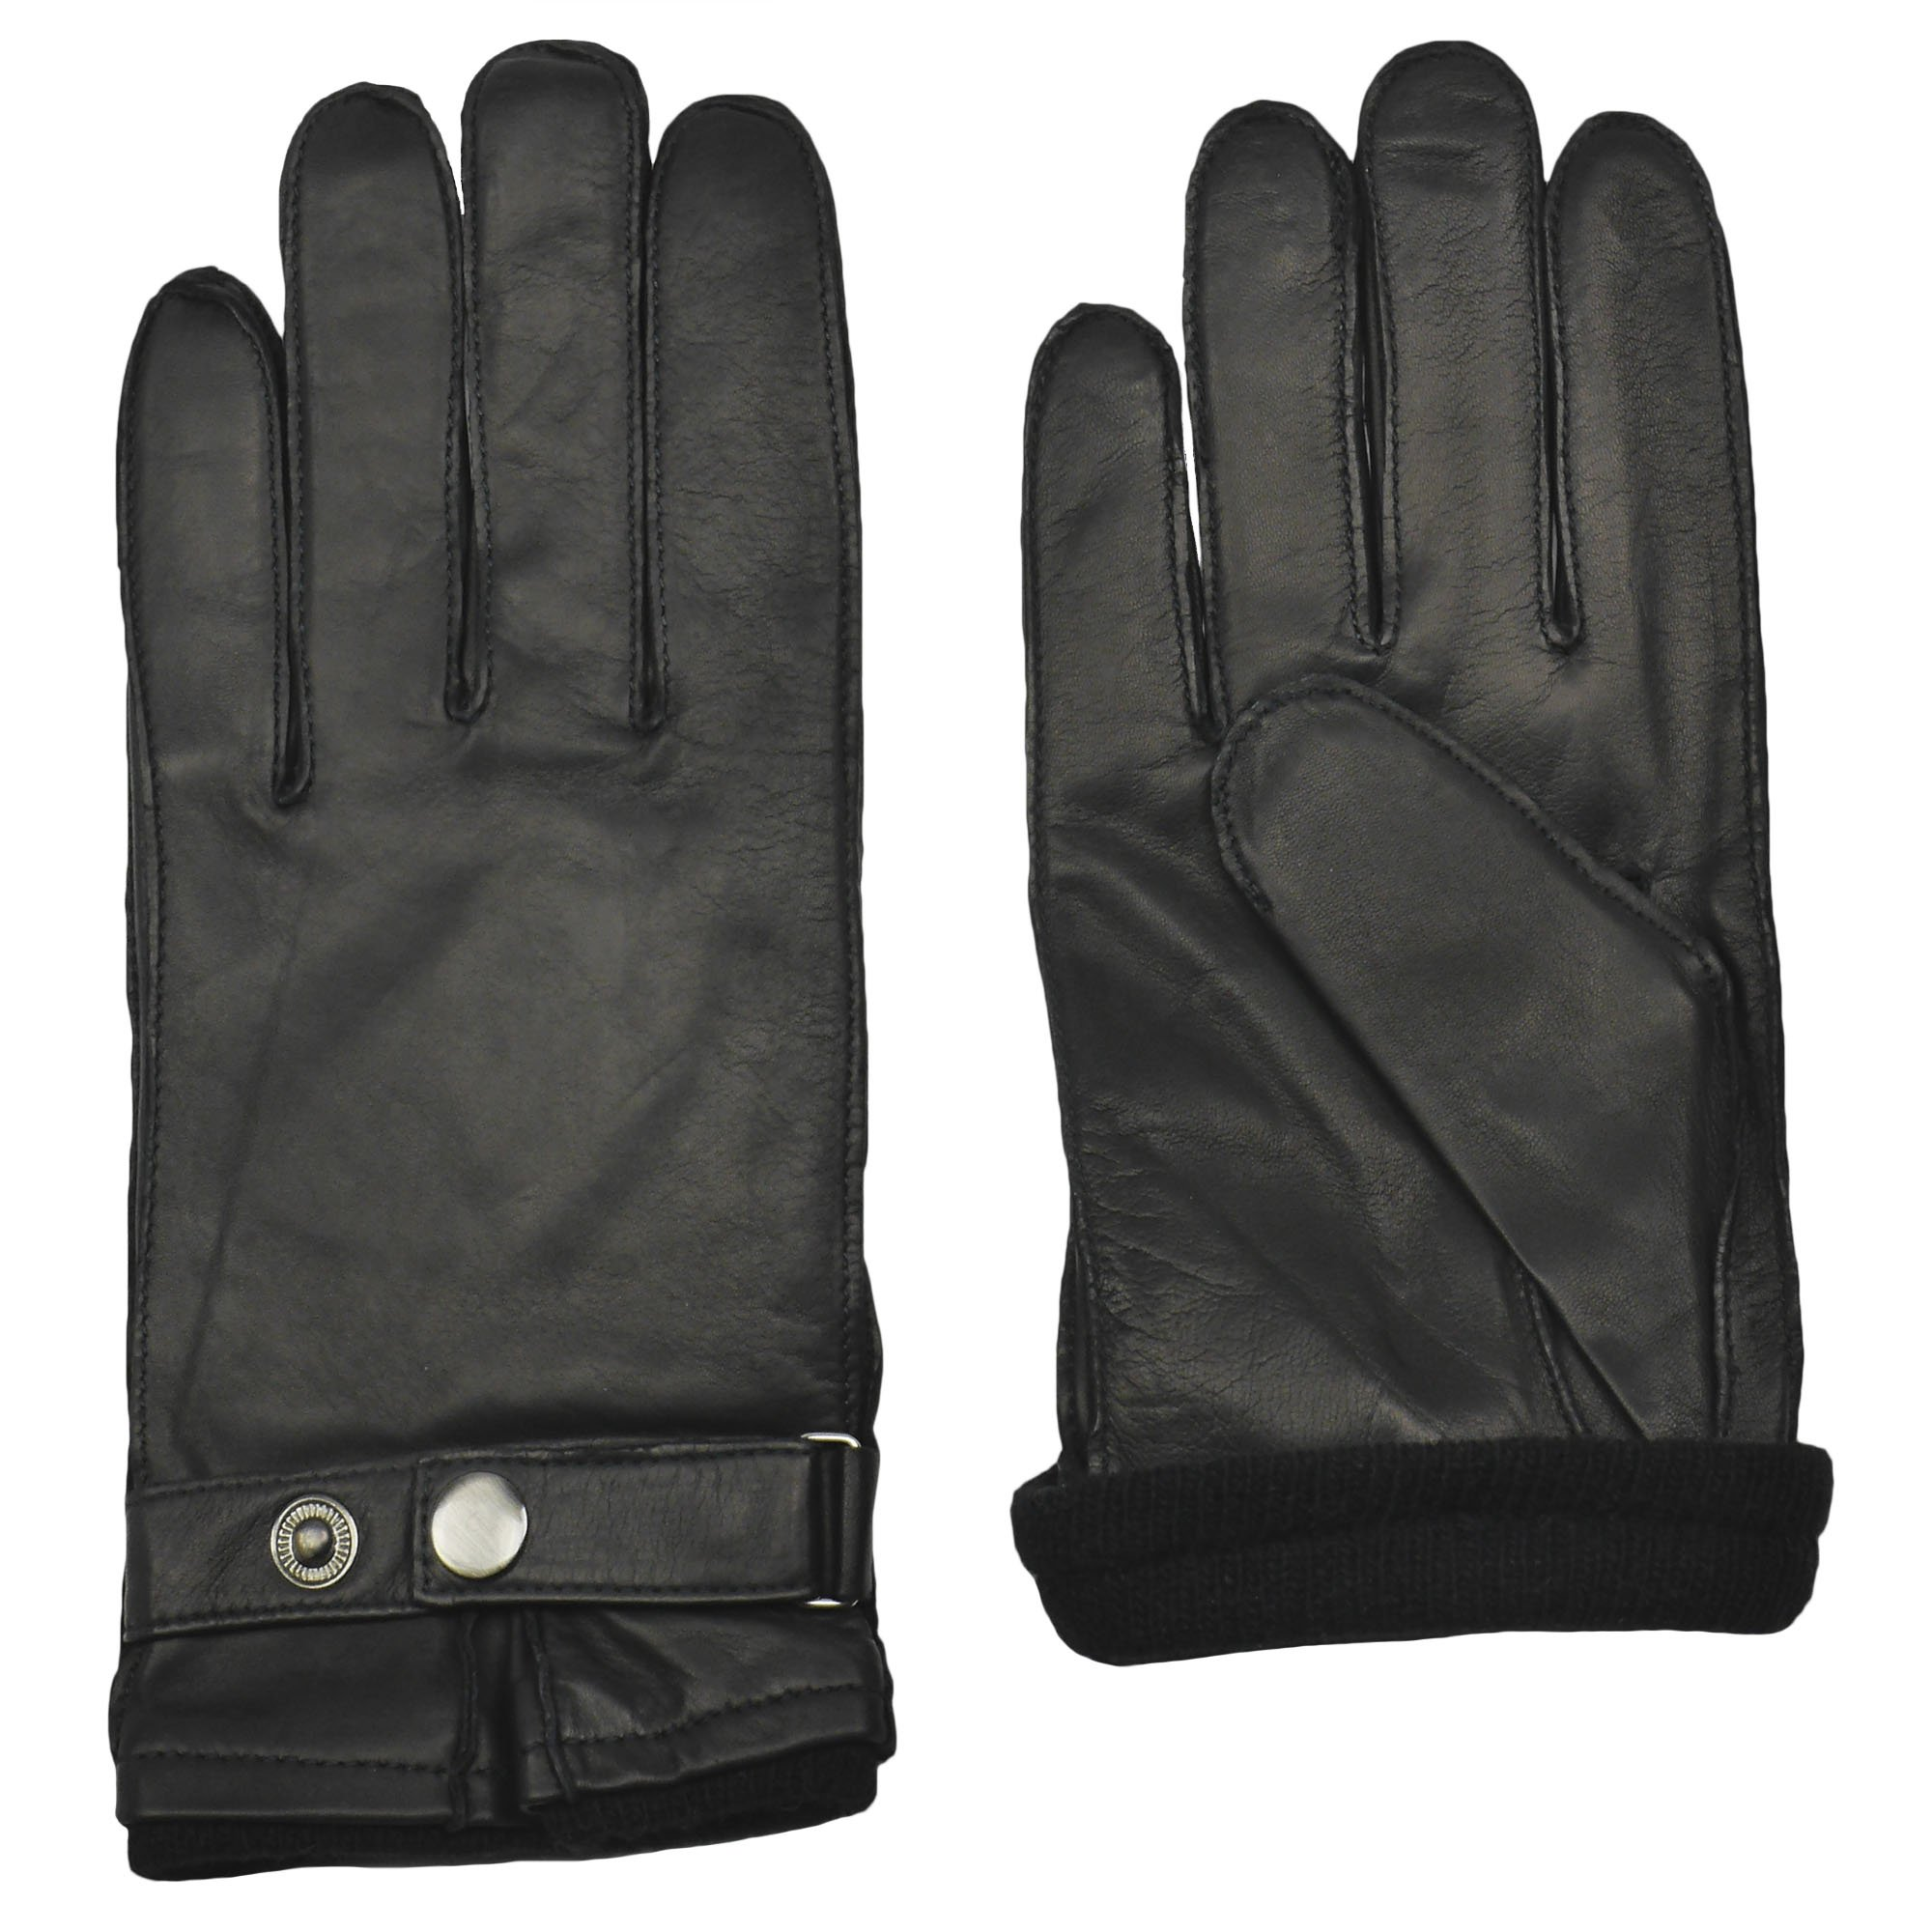 Men's BENTLEY Sheepskin Leather Driving Glove | Cashmere Lined by GRANDOE (Black, Large)